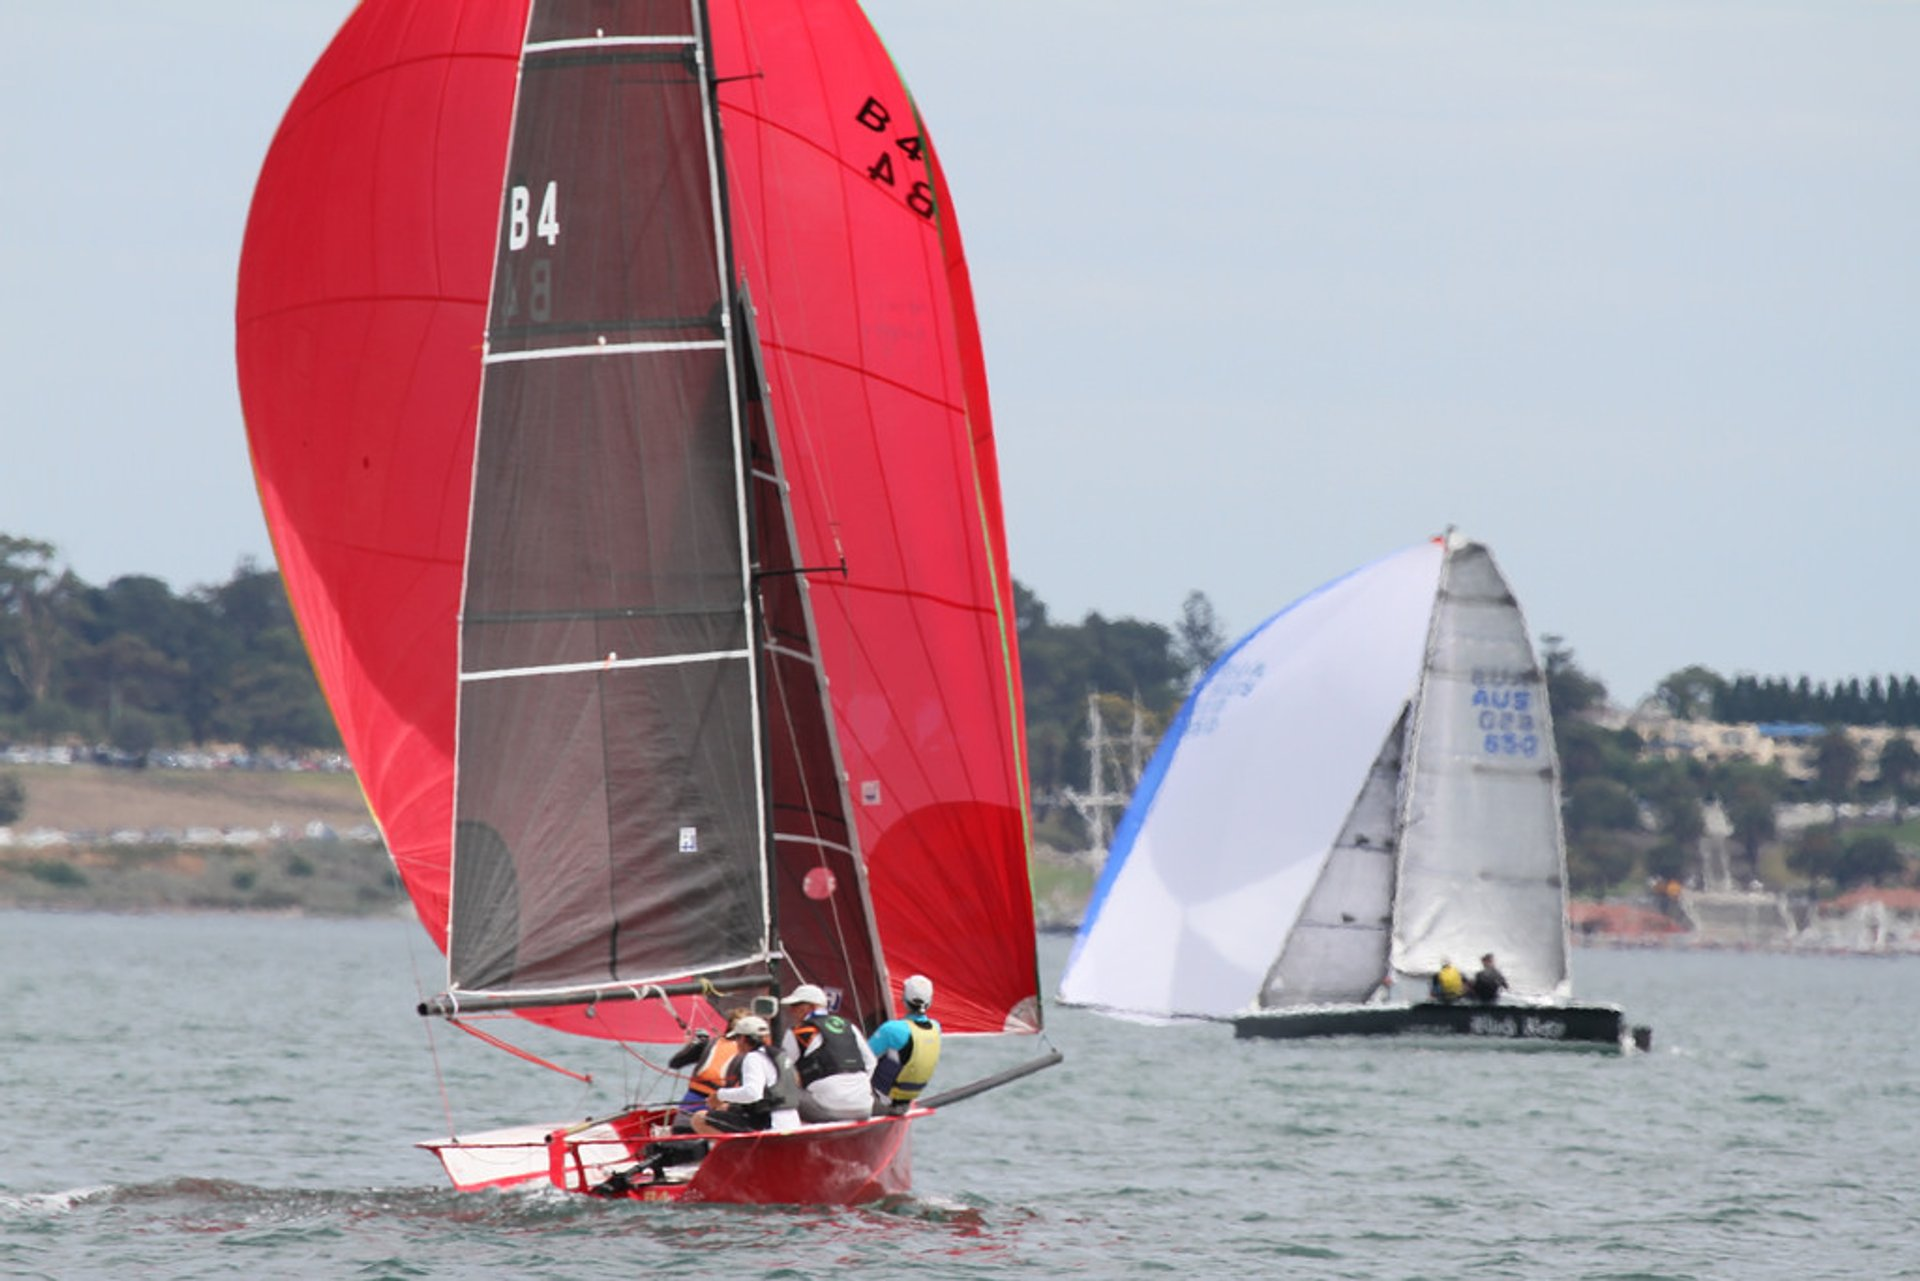 Best time to see Festival of Sails in Victoria 2020